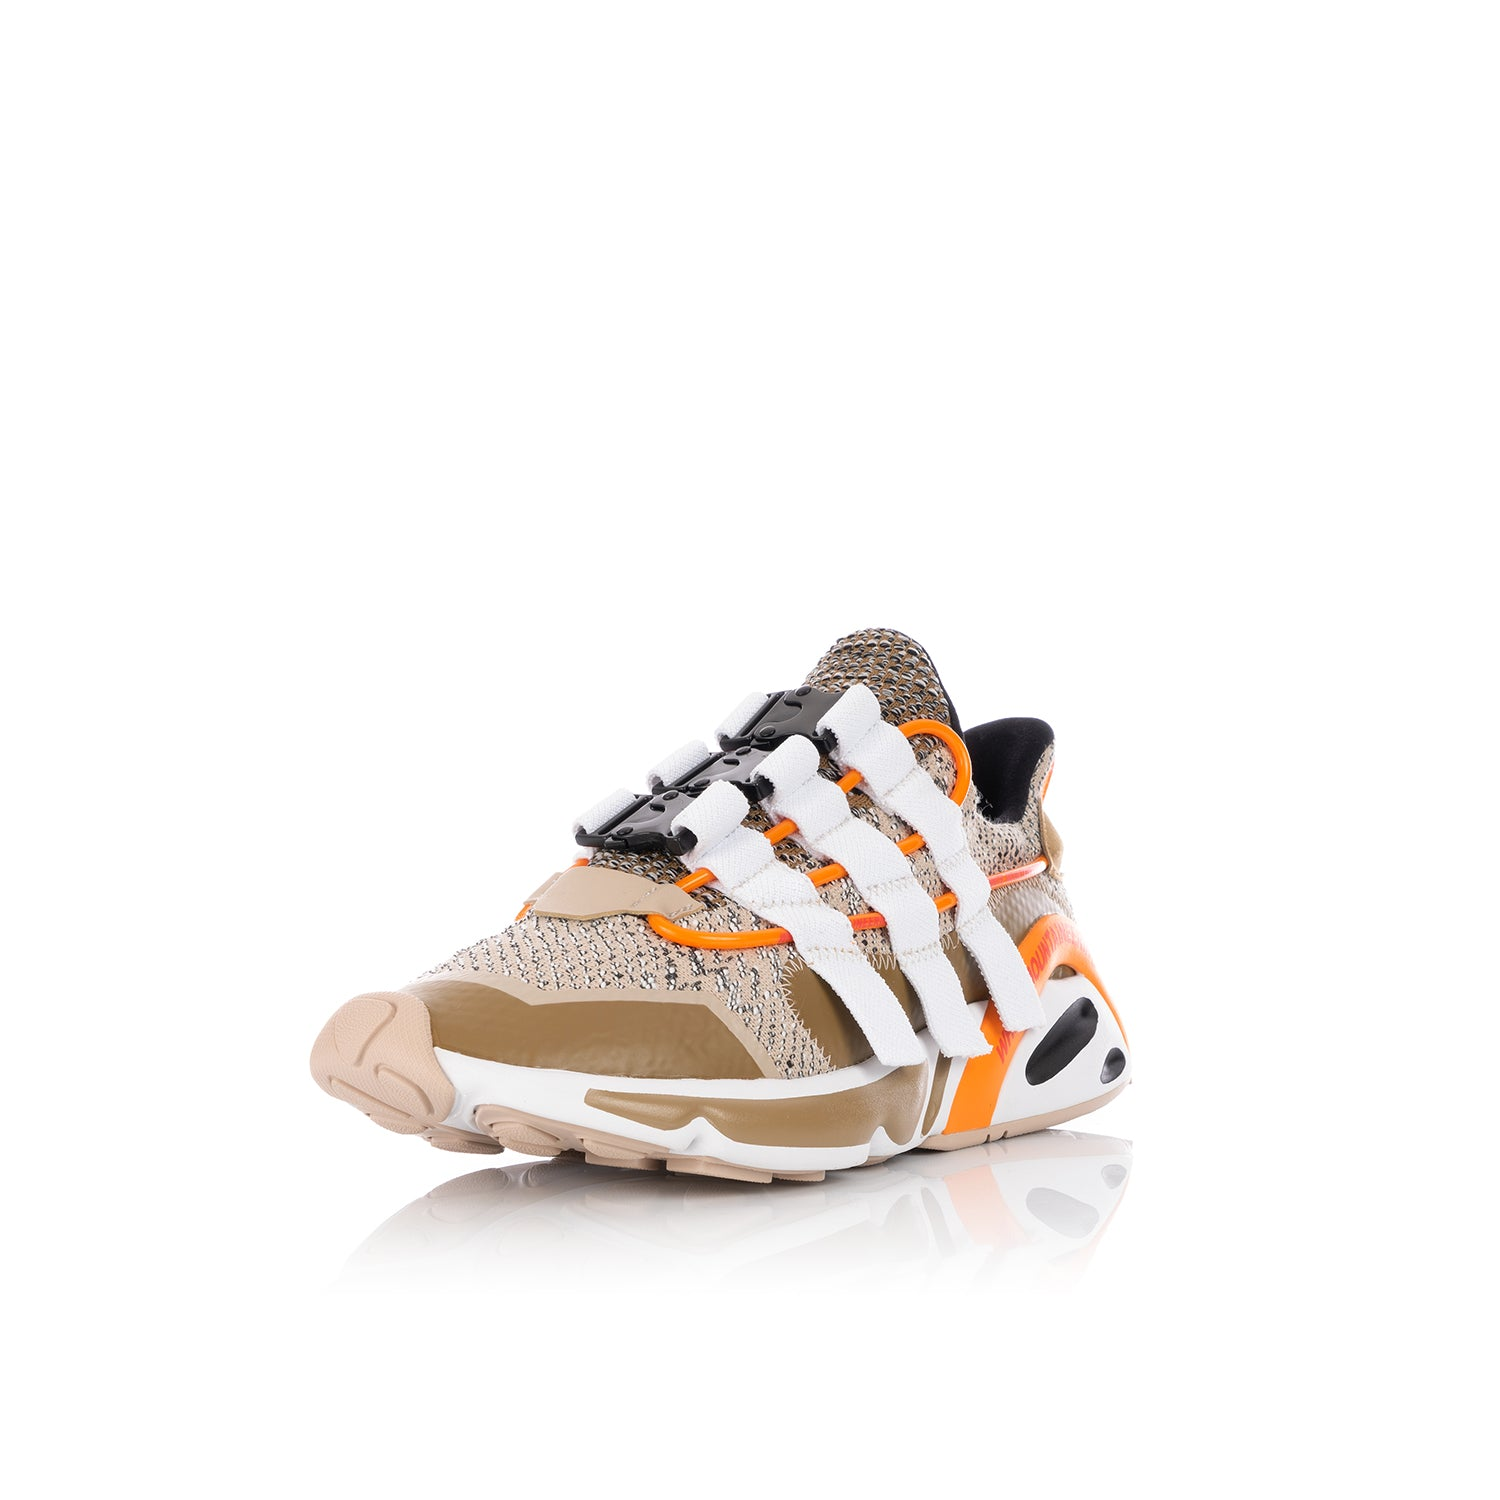 adidas Originals x White Mountaineering LXCON Light Brown